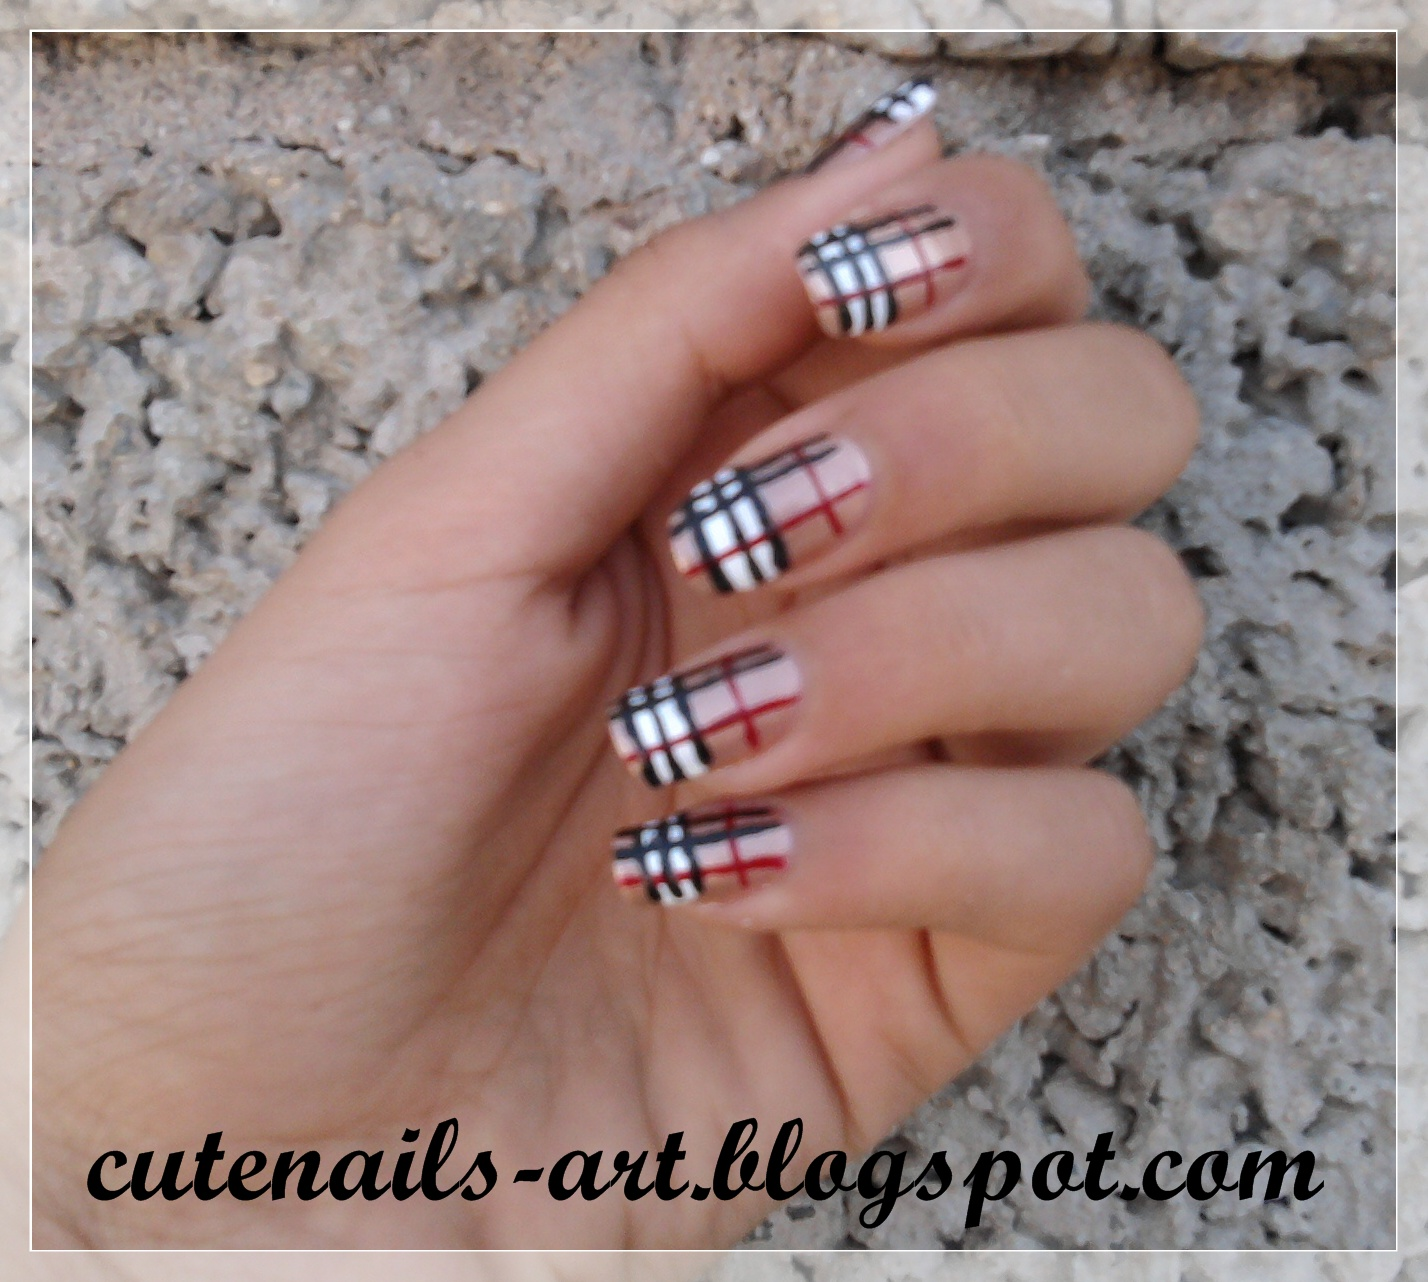 cutenails-art: burberry/fall colors nails